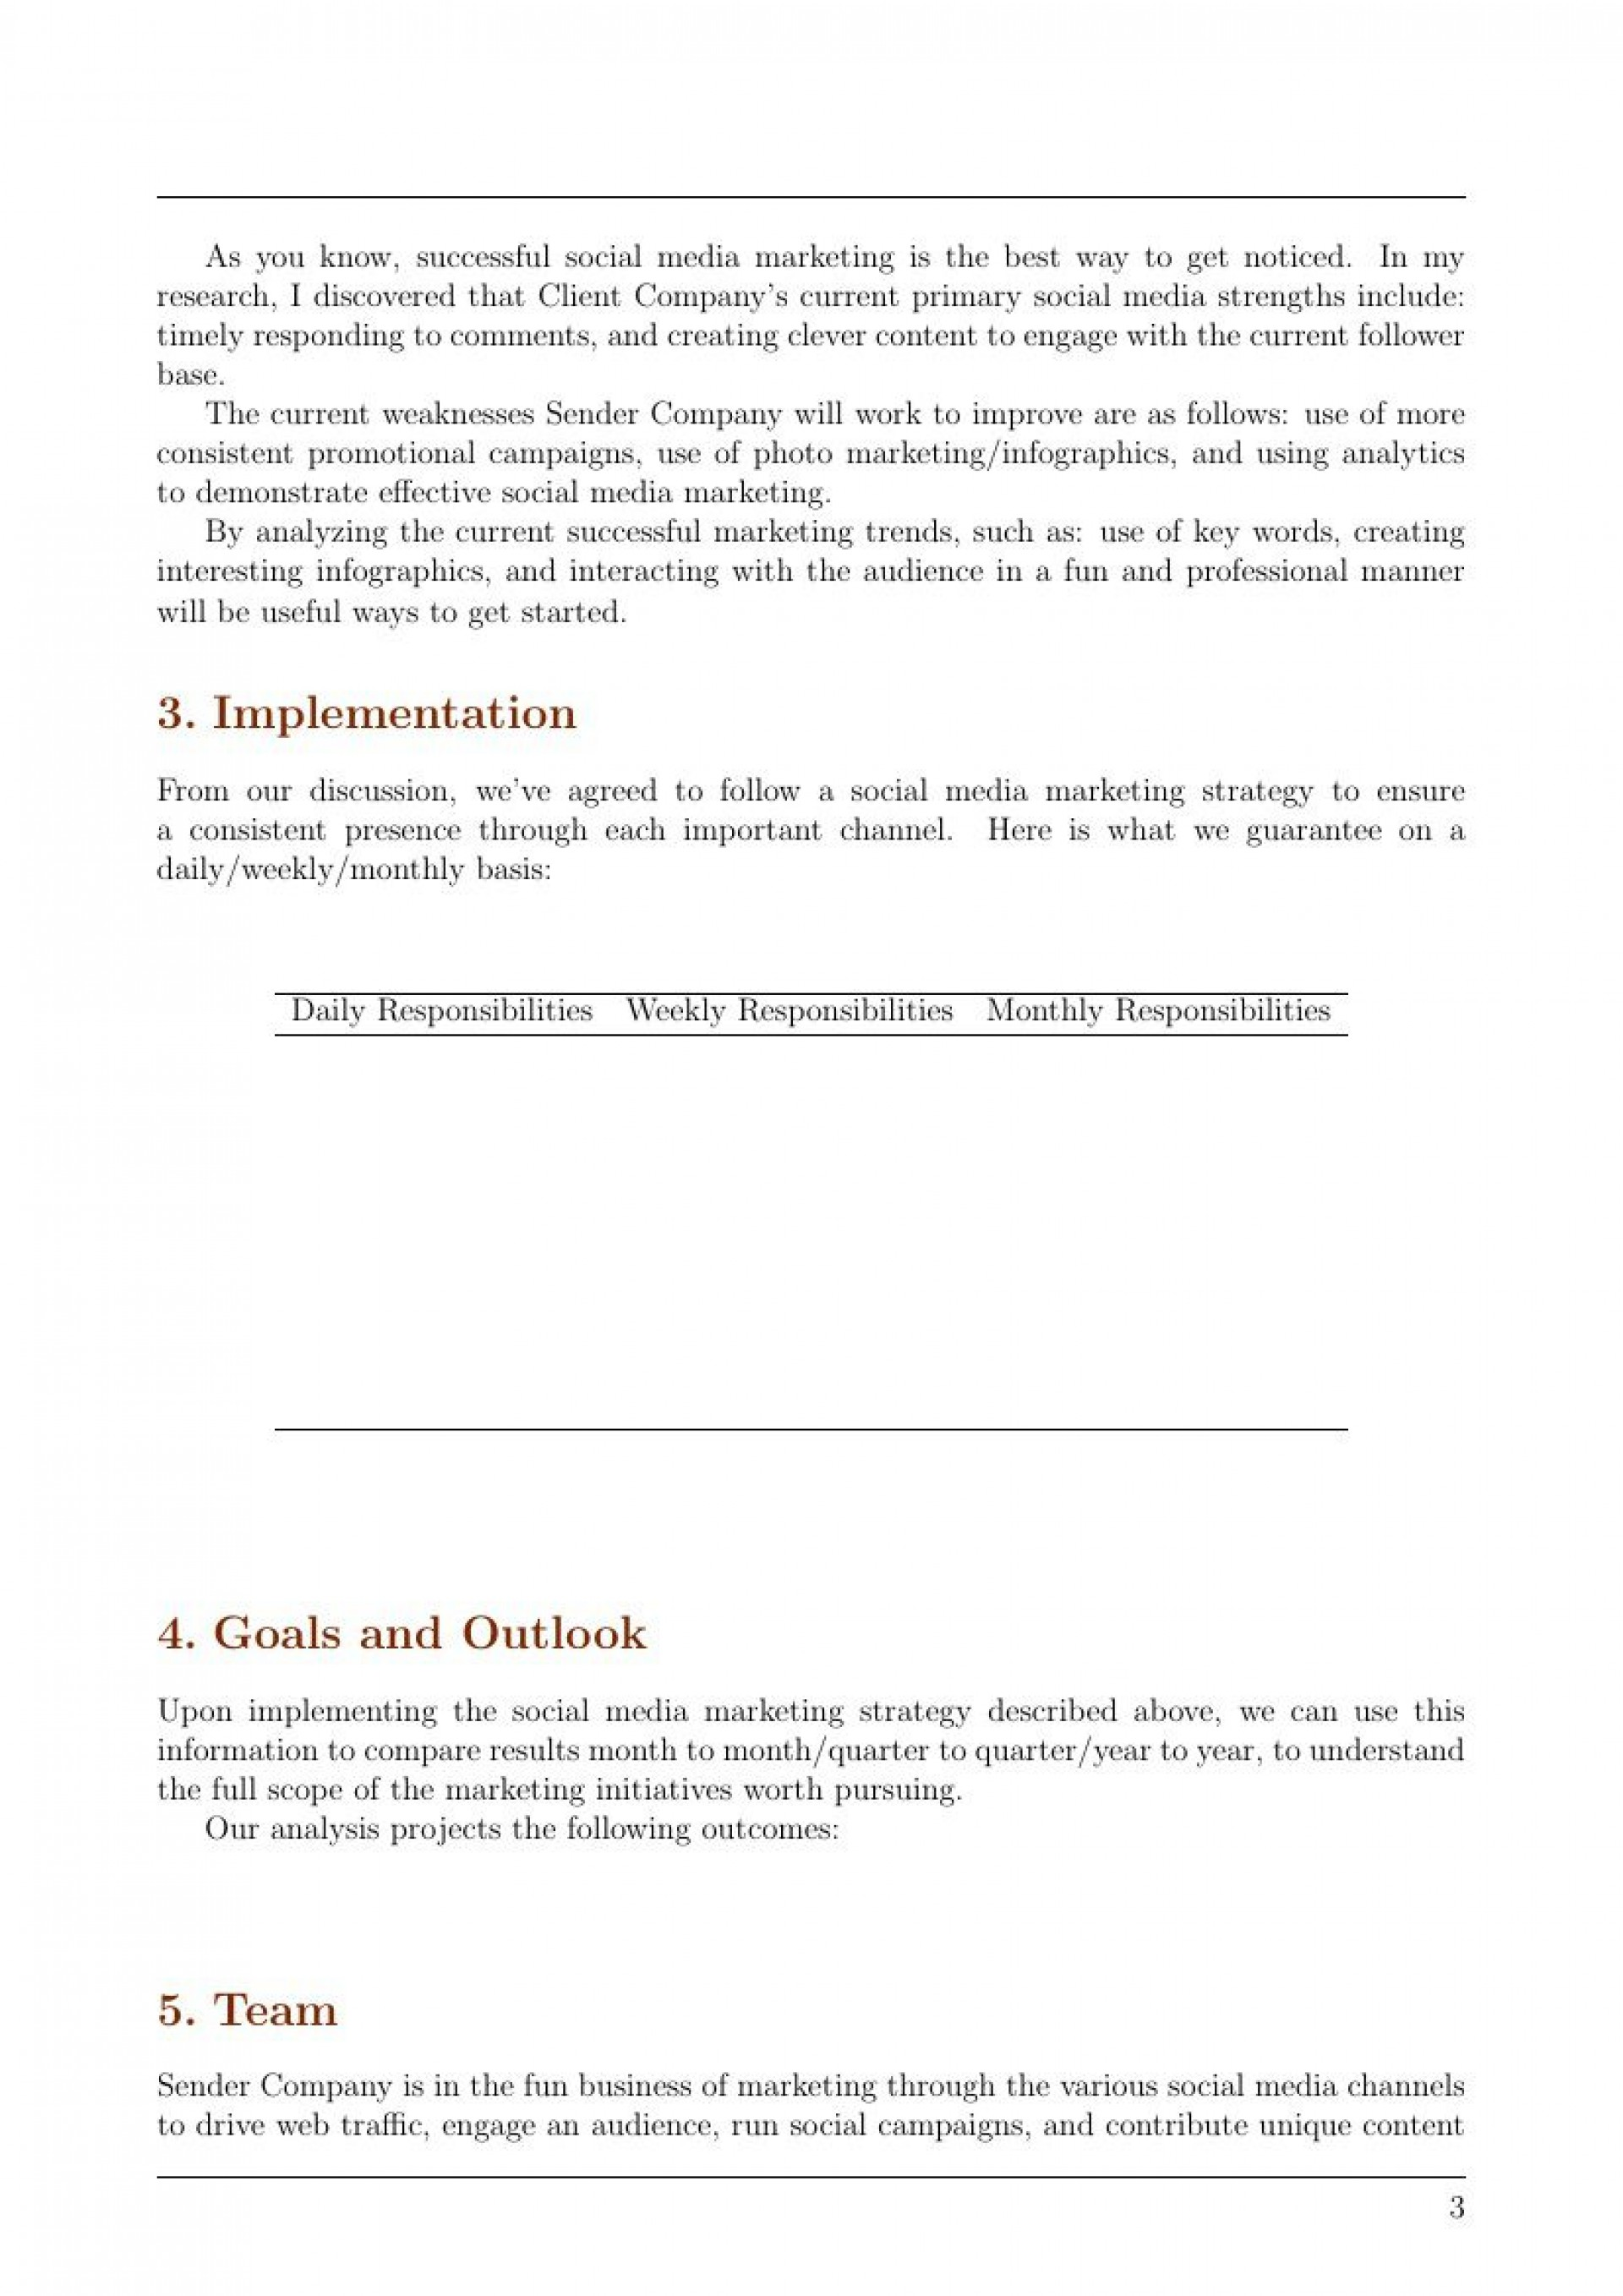 006 Formidable Social Media Marketing Proposal Template Highest Clarity  Plan Free Download Pdf Word1920